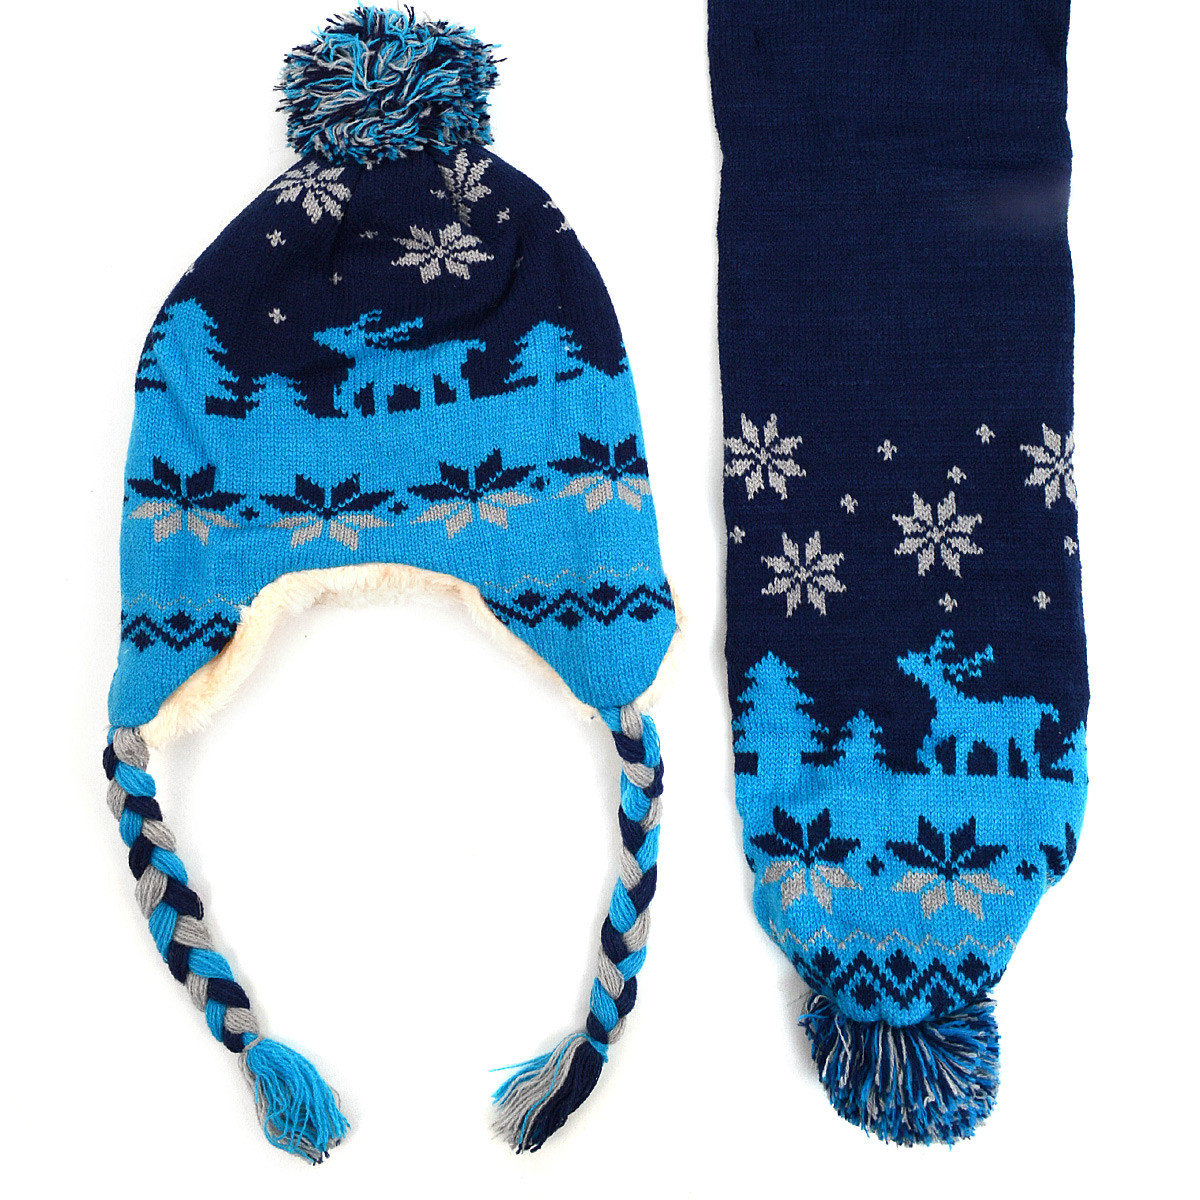 Kid's Winter Knitted Ear Flap Lined Reindeer Pom Beanie Scarf and Hat Set - KKWS1732